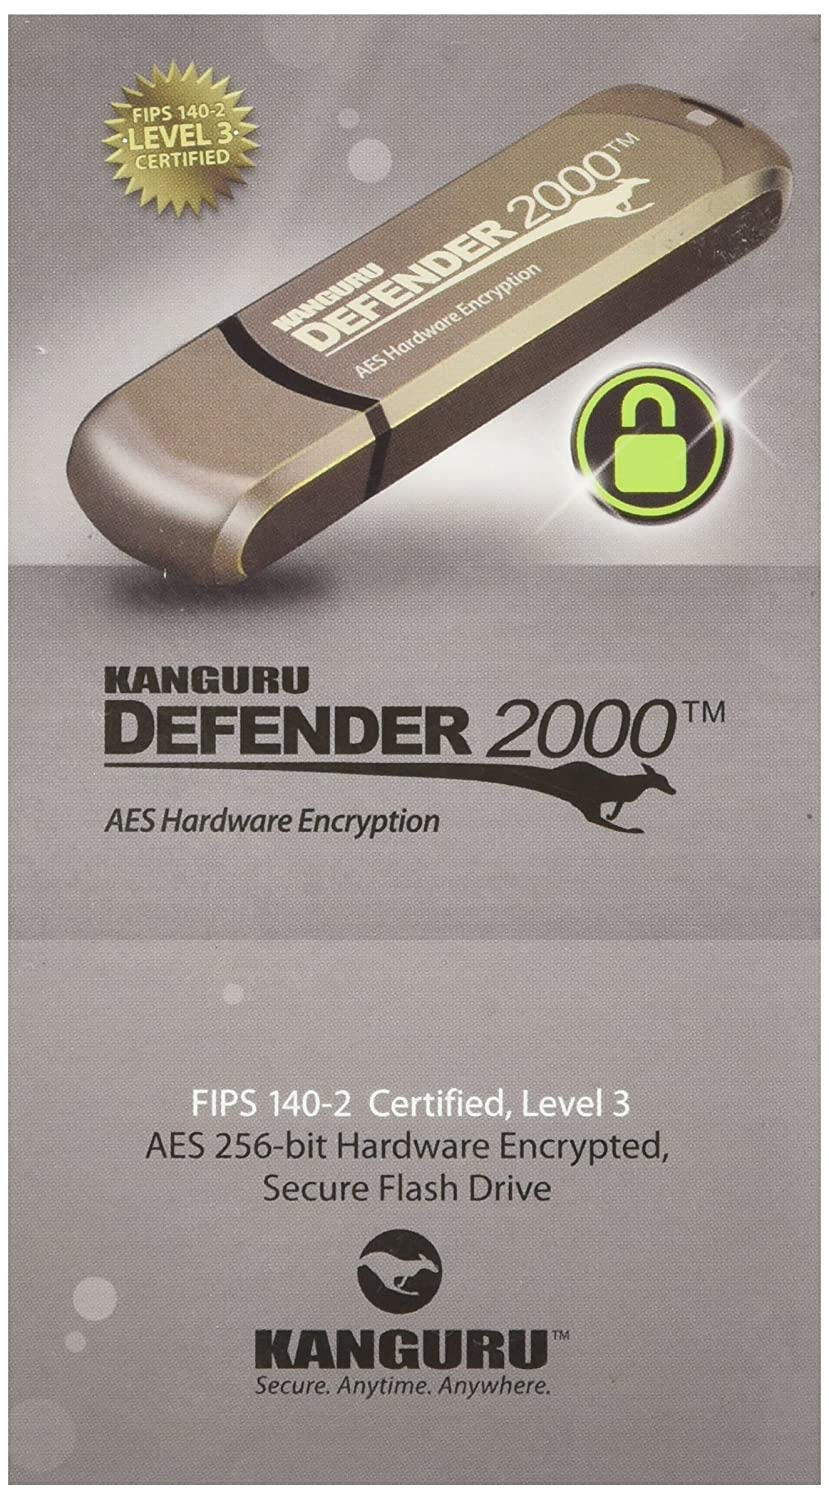 Amazon kanguru 8gb defender 2000 secure usb 20 fips 140 2 amazon kanguru 8gb defender 2000 secure usb 20 fips 140 2 encrypted flash drive kdf2000 8g computers accessories 1betcityfo Image collections